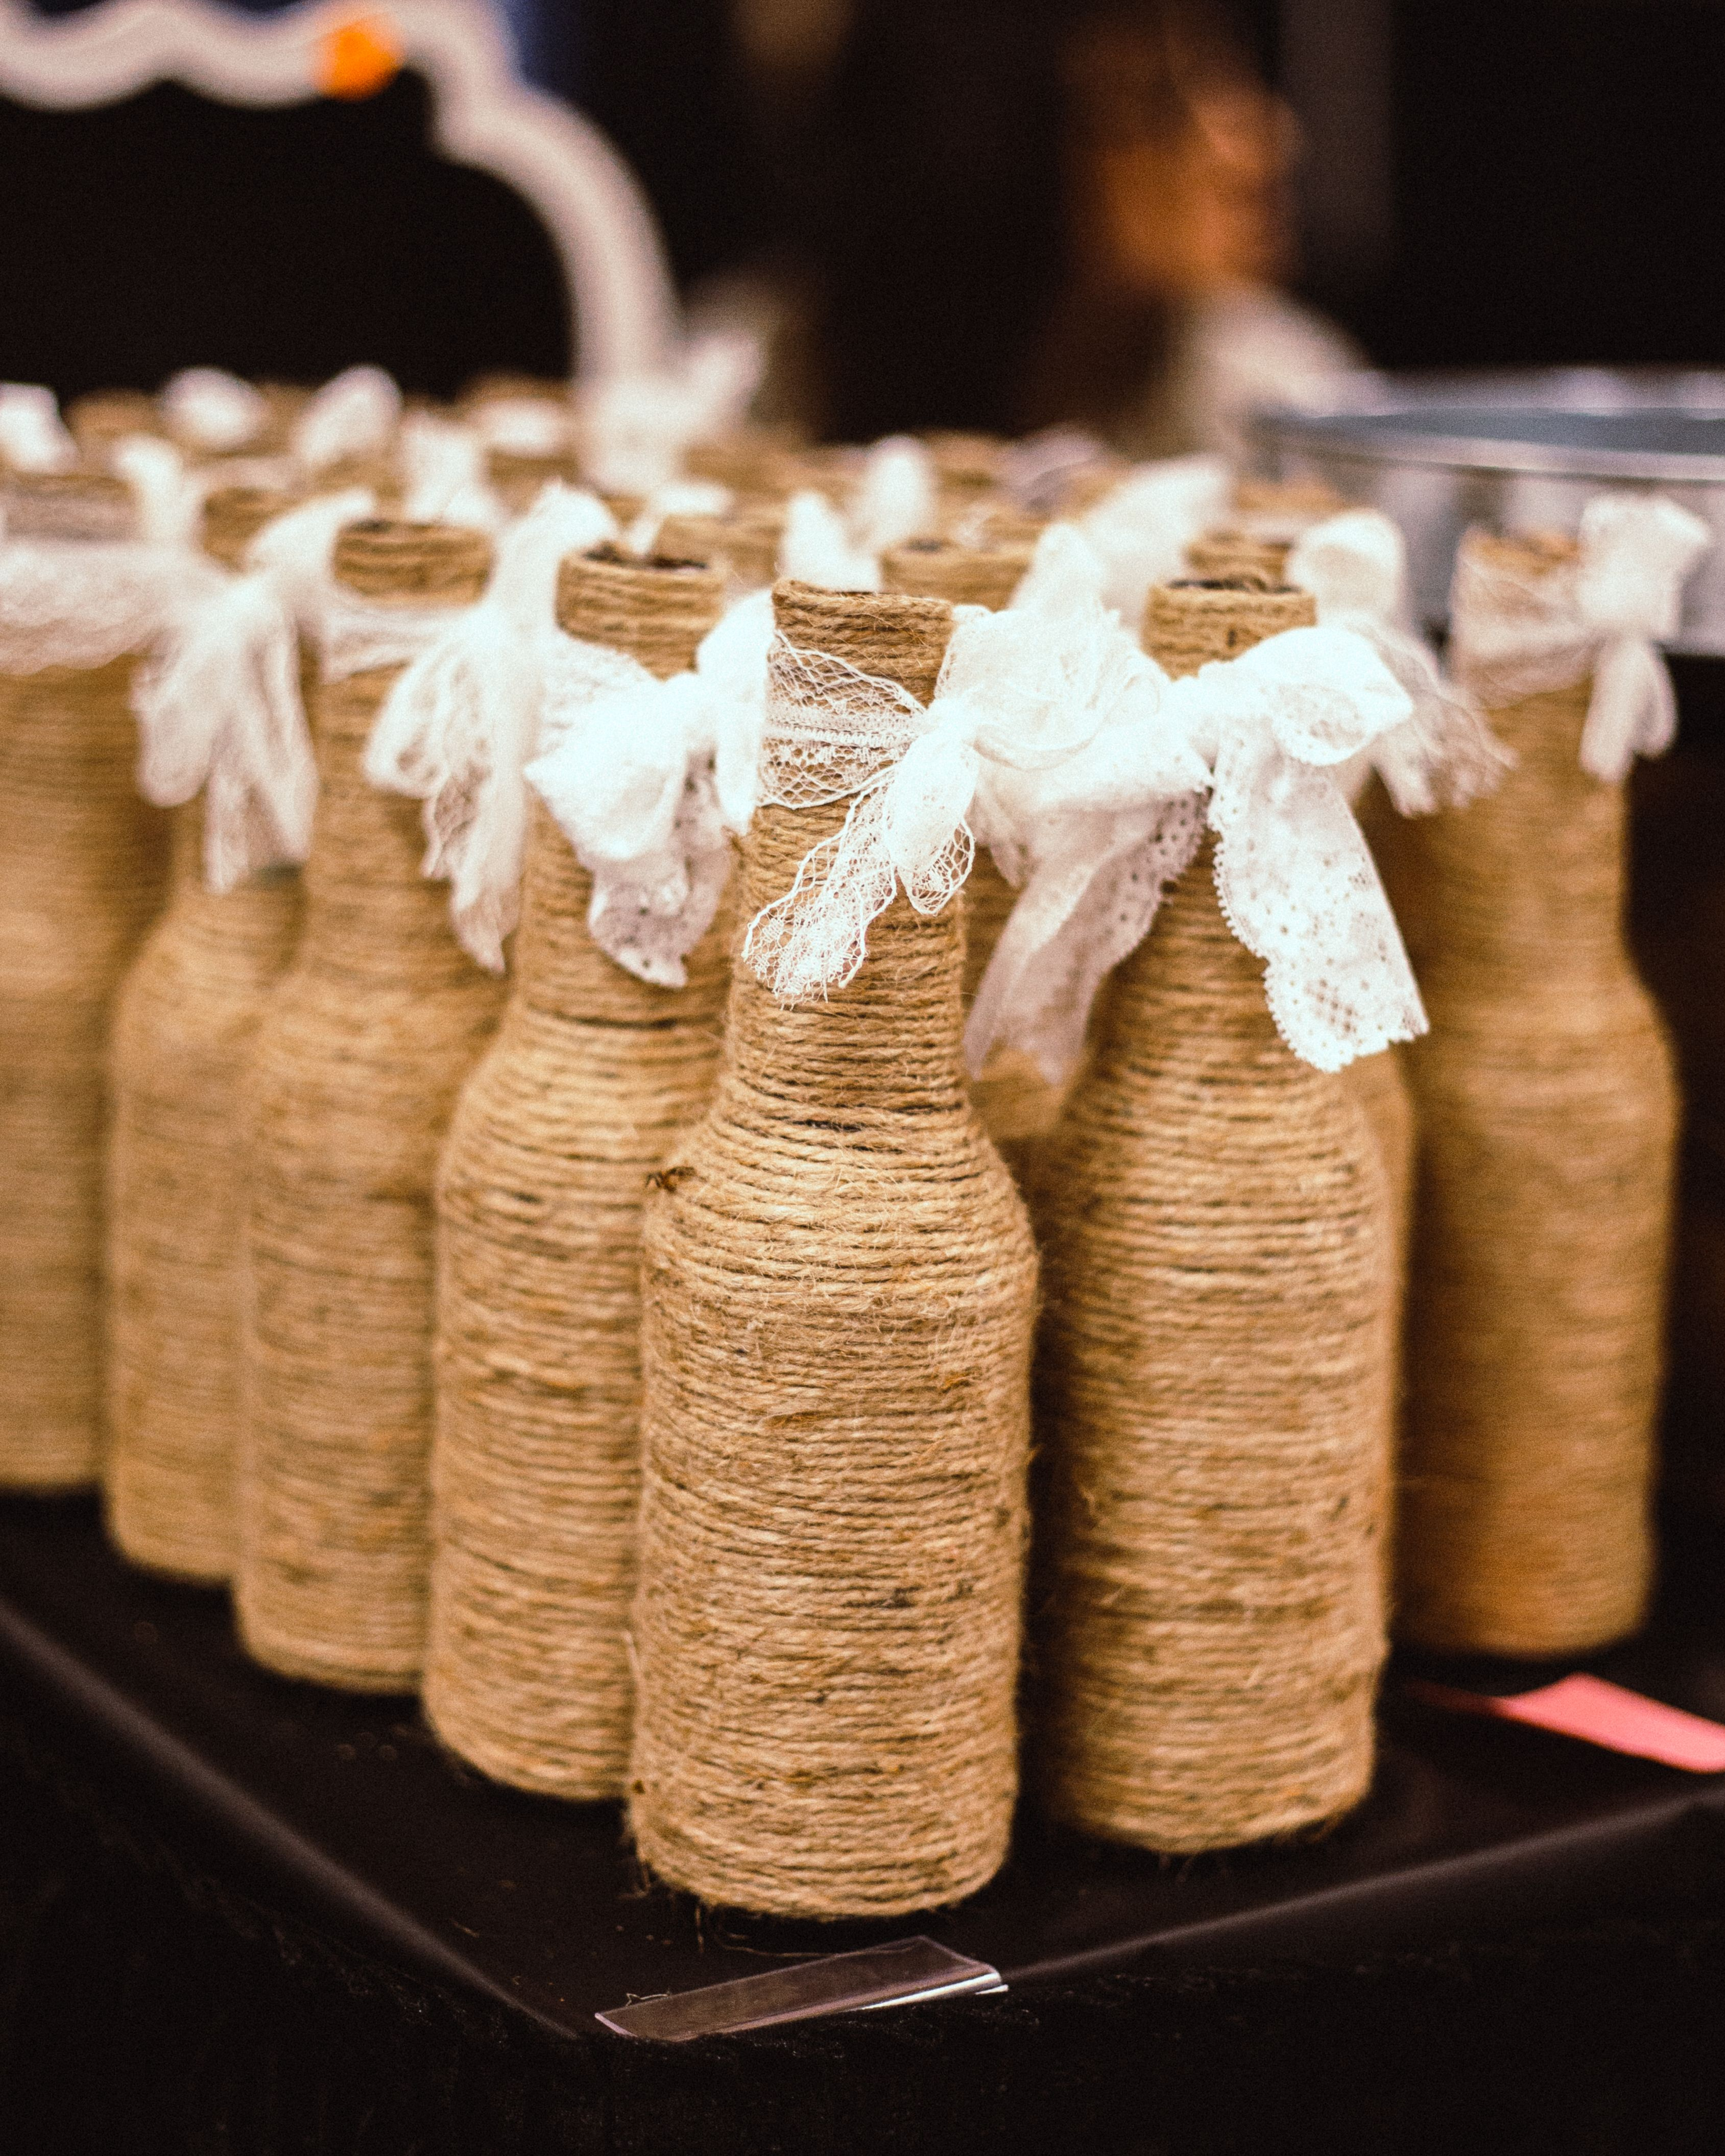 Rustic Is One Of The Most Popular Wedding Themes You Can Shop At Our Wedding Flea Market Events Bring On The Bu Popular Wedding Themes Event Marketing Wedding